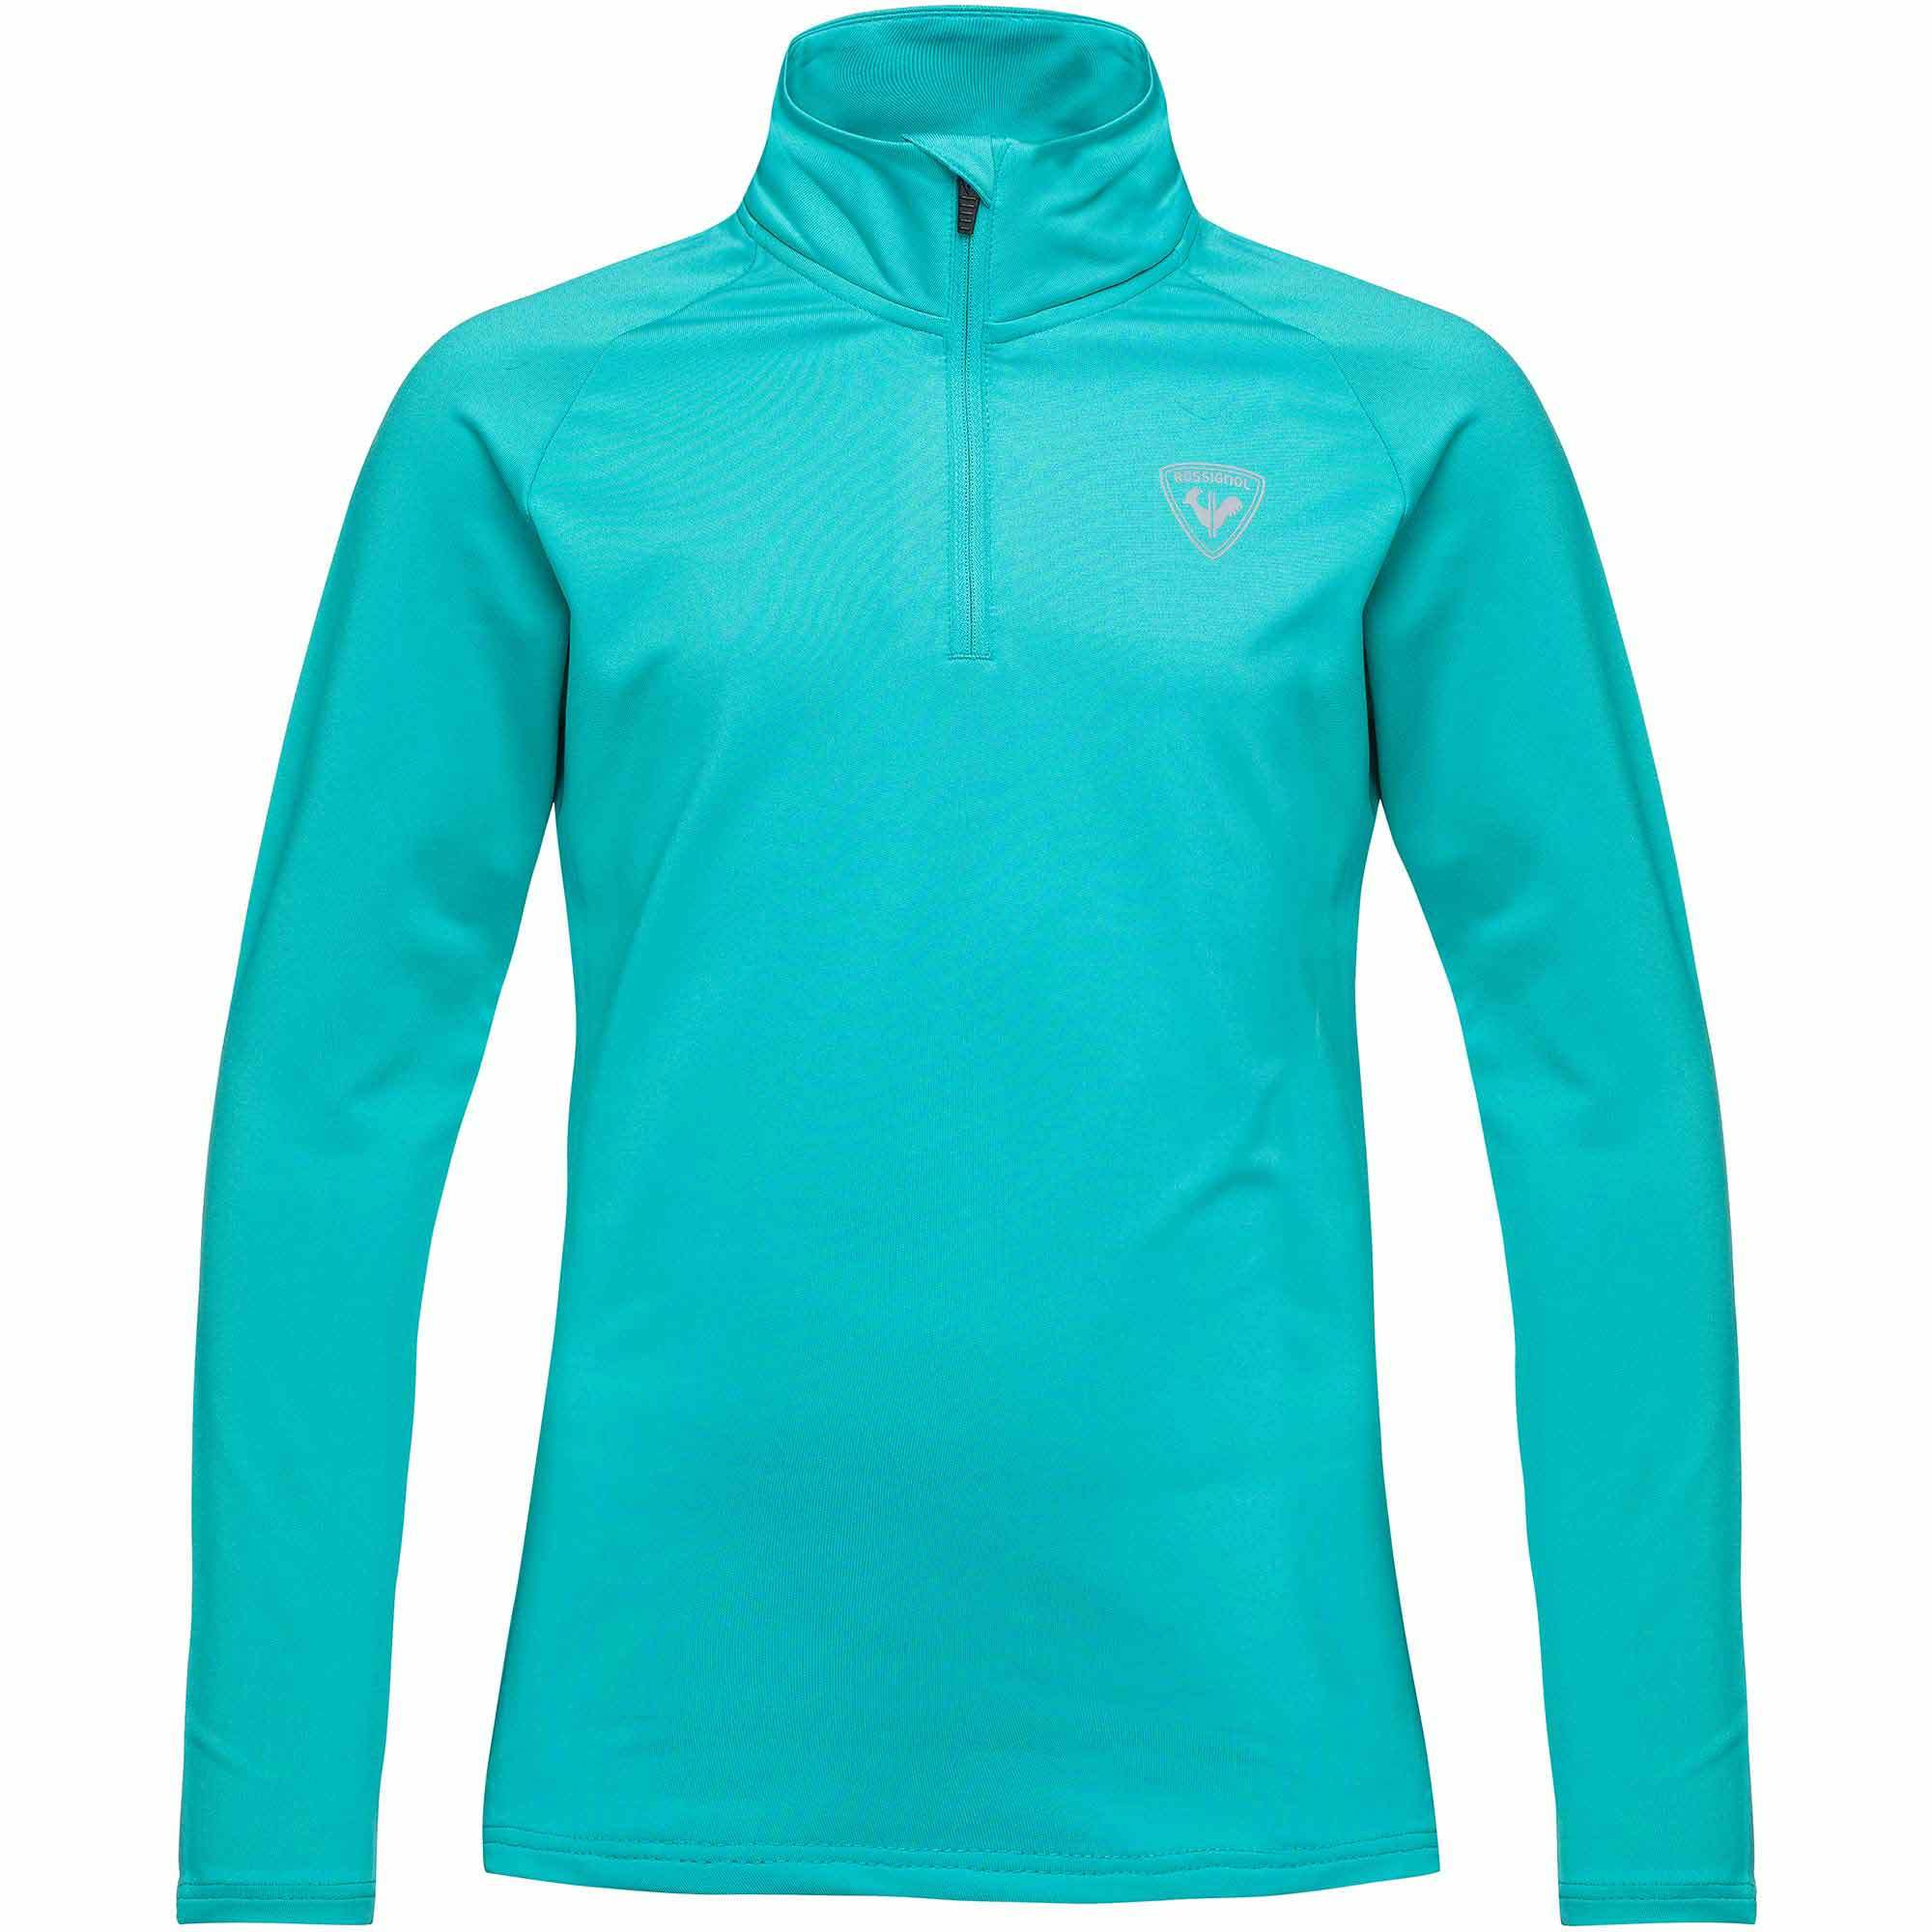 Rossignol Apparel Girl 1/2 Zip Warm Stretch